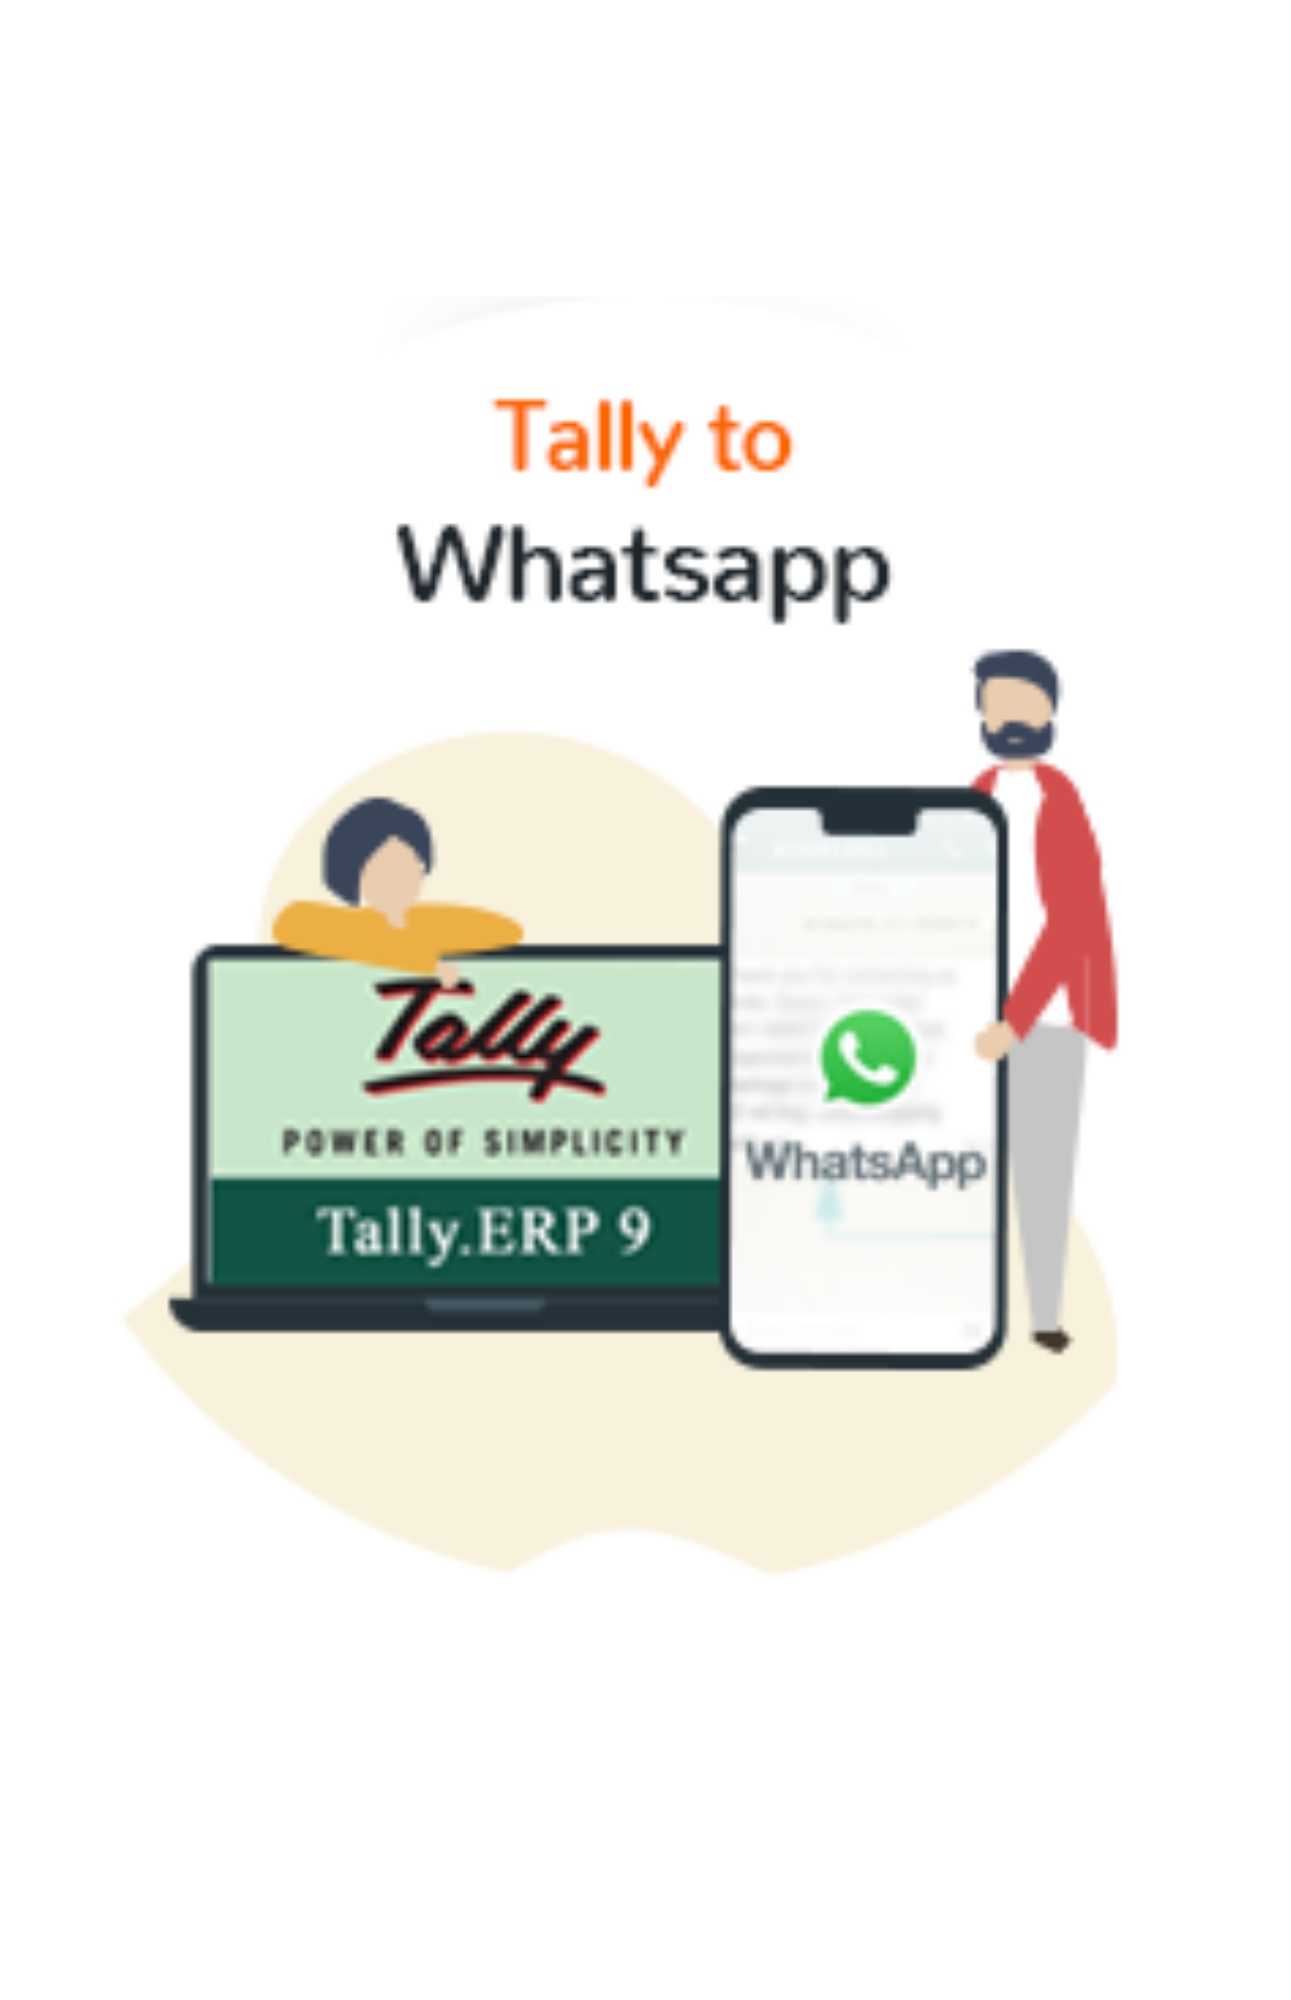 Tally to Whatsapp